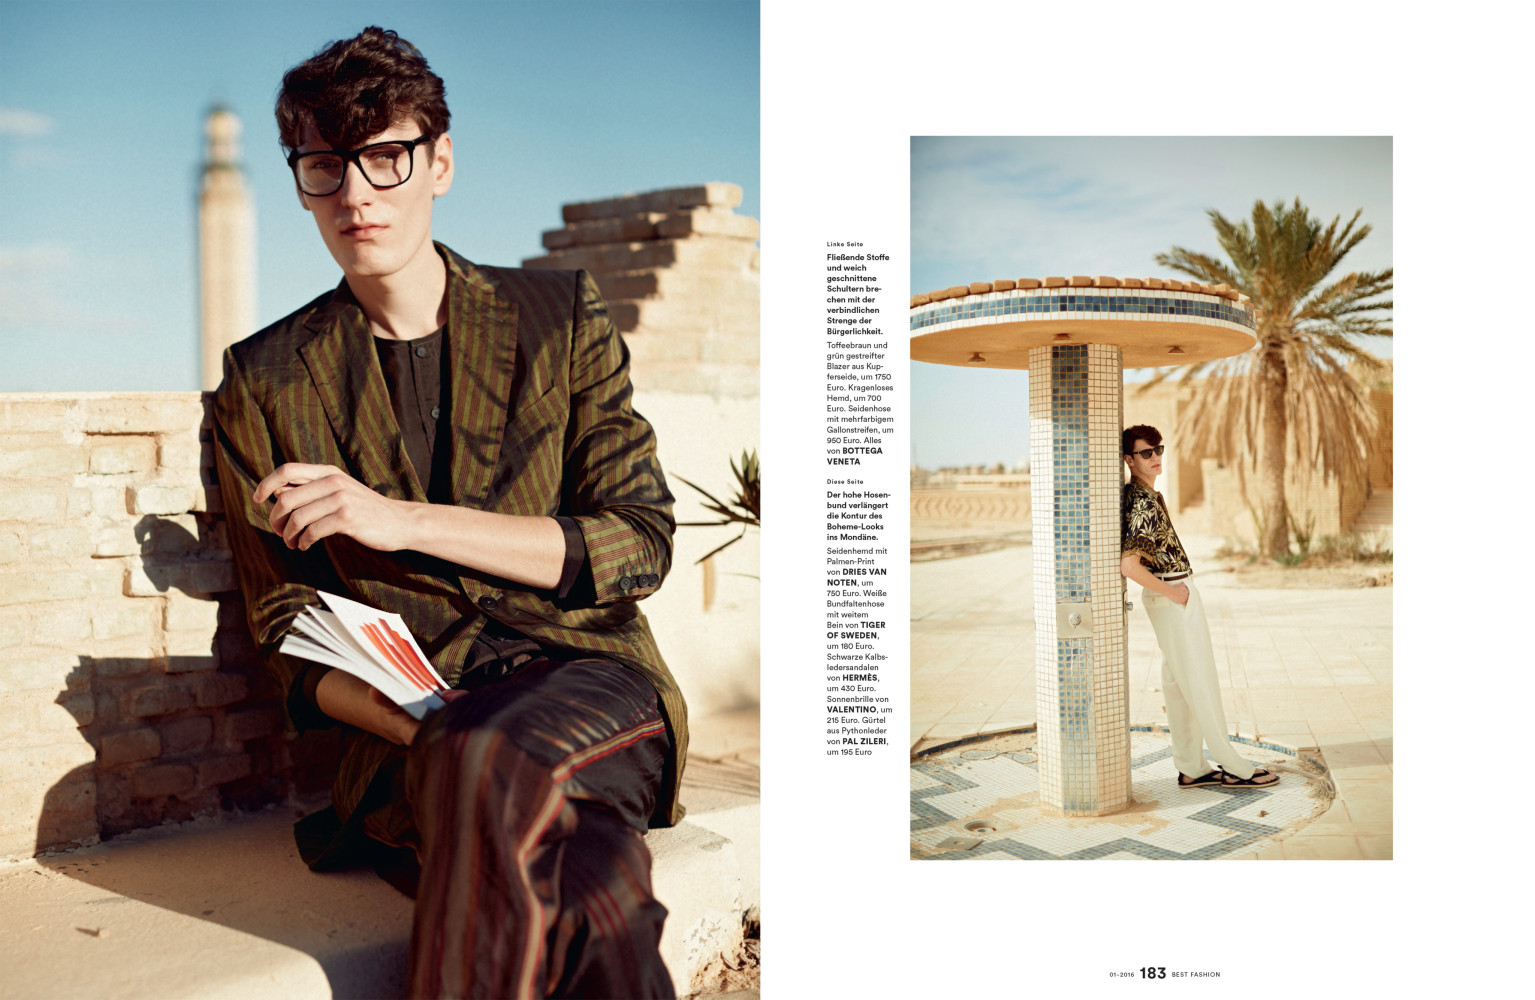 Jakob Schutte for Men's Heath Best Fashion Magazine